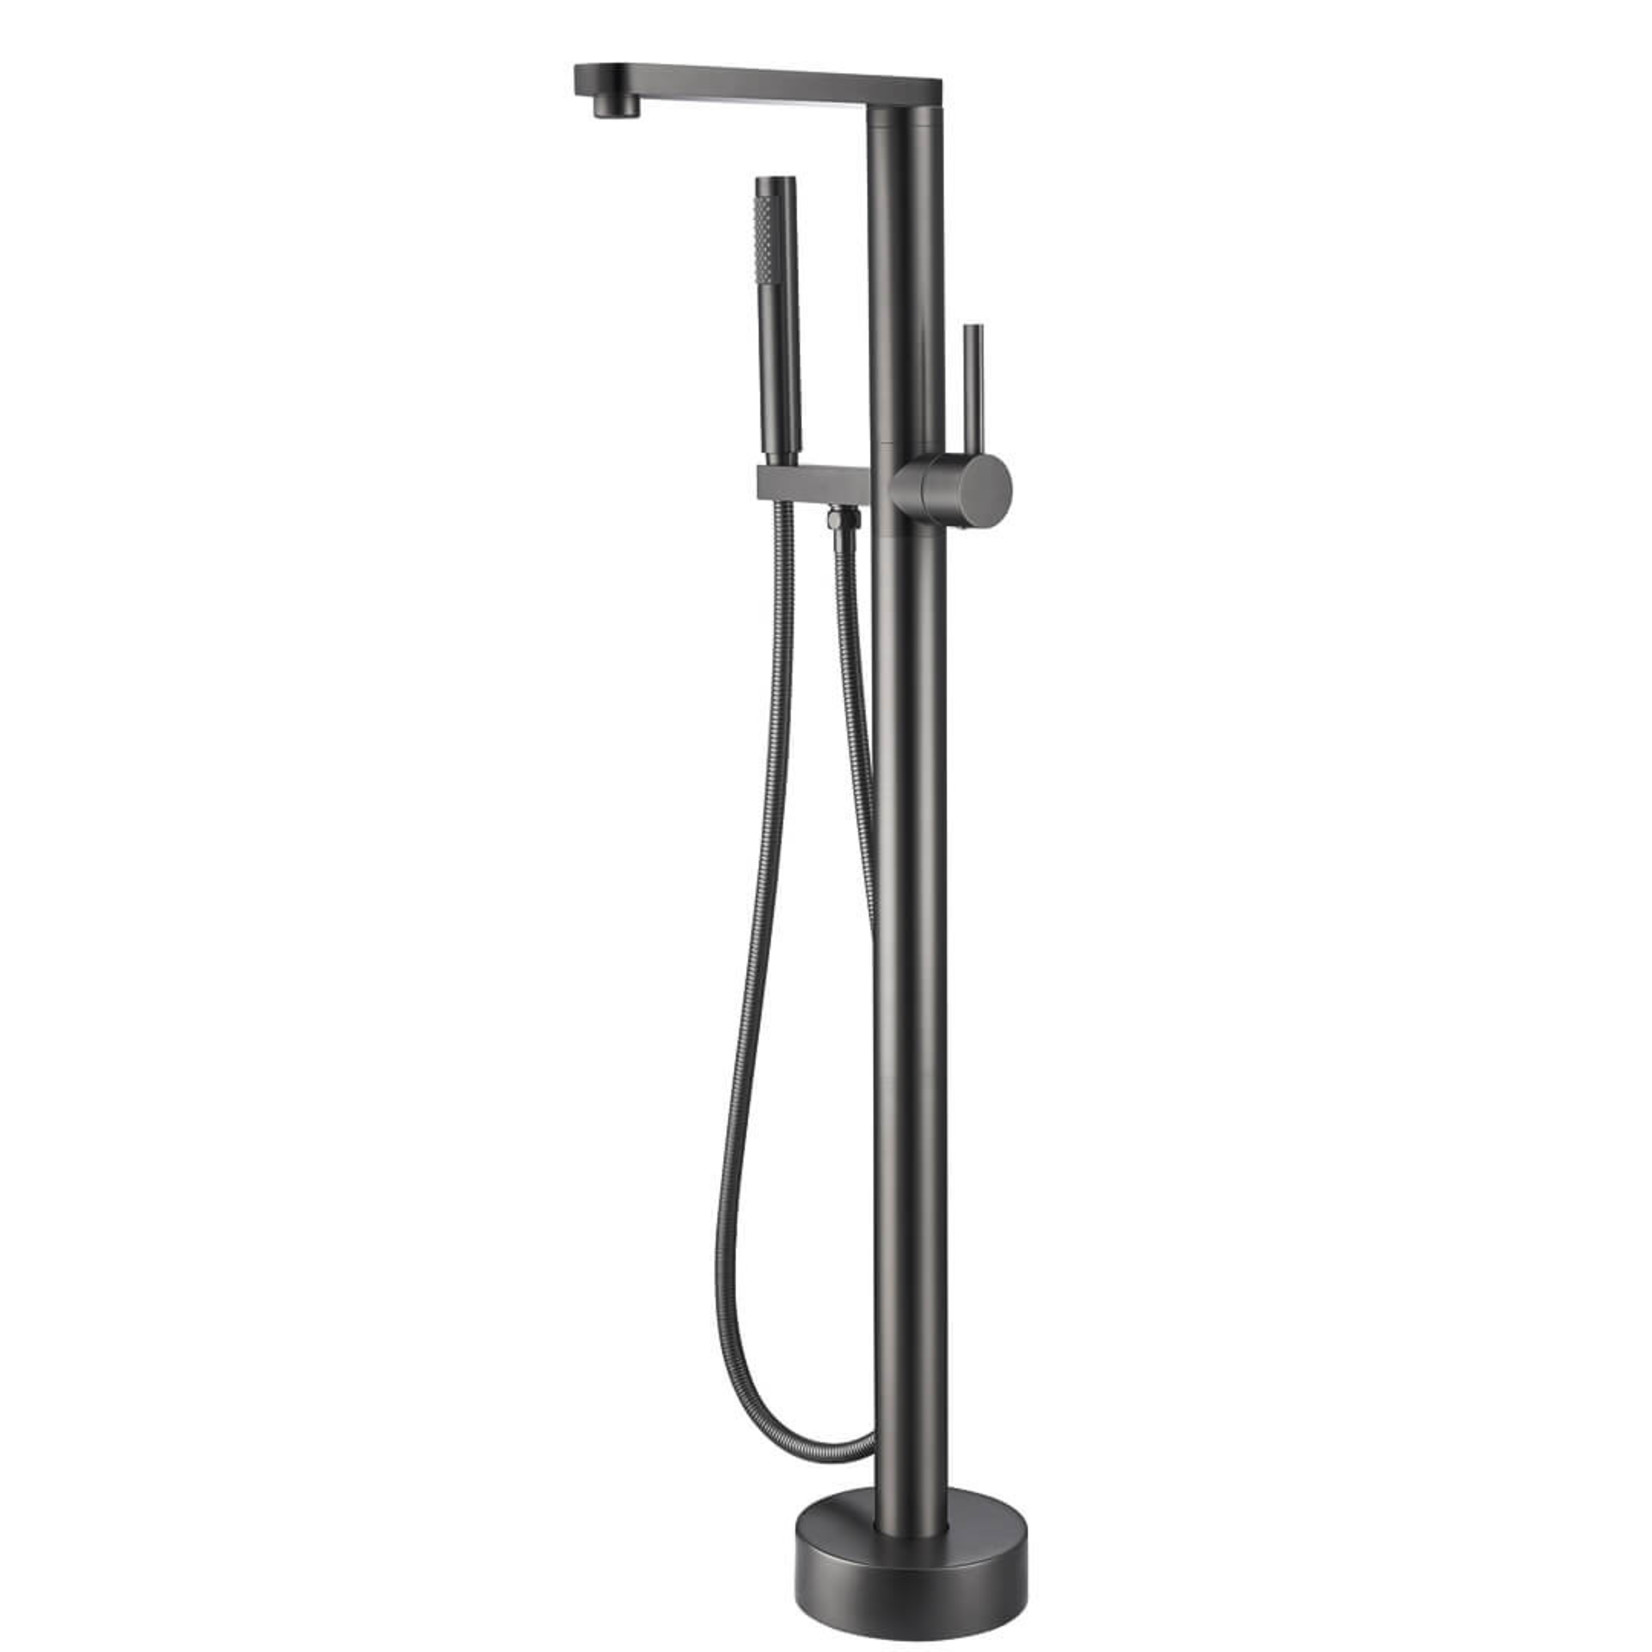 Dark metal freestanding bathtub faucet Vinny Jade Bath collection 8415-17